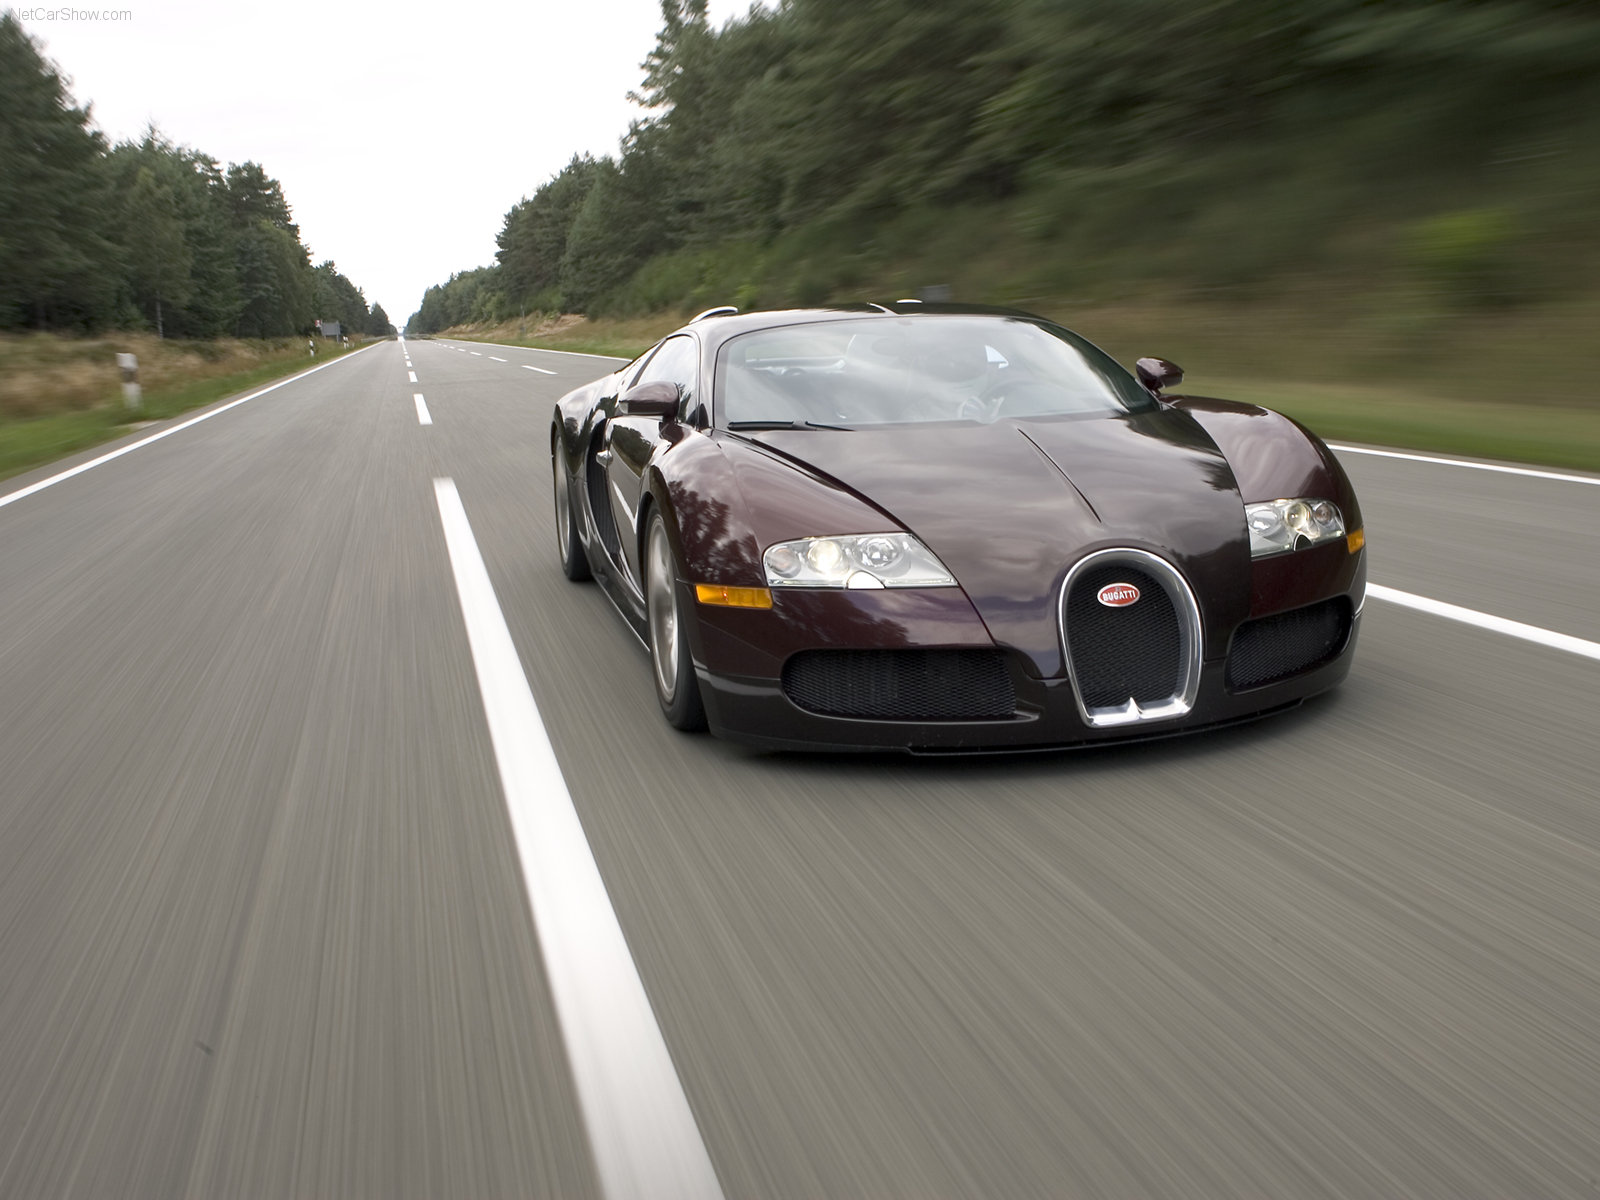 bugatti veyron hd wallpapers hd wallpapers. Black Bedroom Furniture Sets. Home Design Ideas